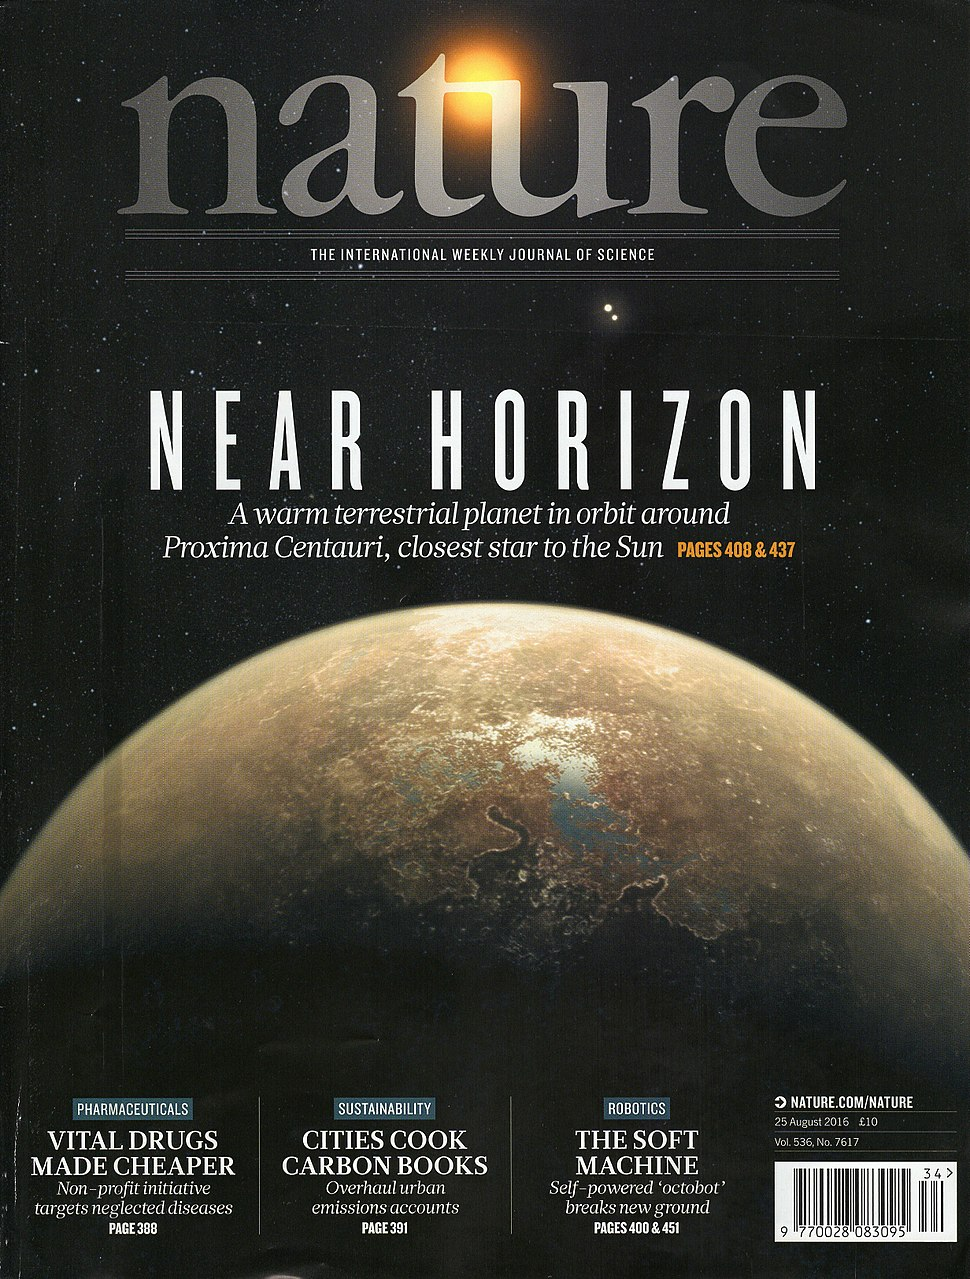 Nature volume 536 number 7617 cover displaying an artist's impression of Proxima Centauri b